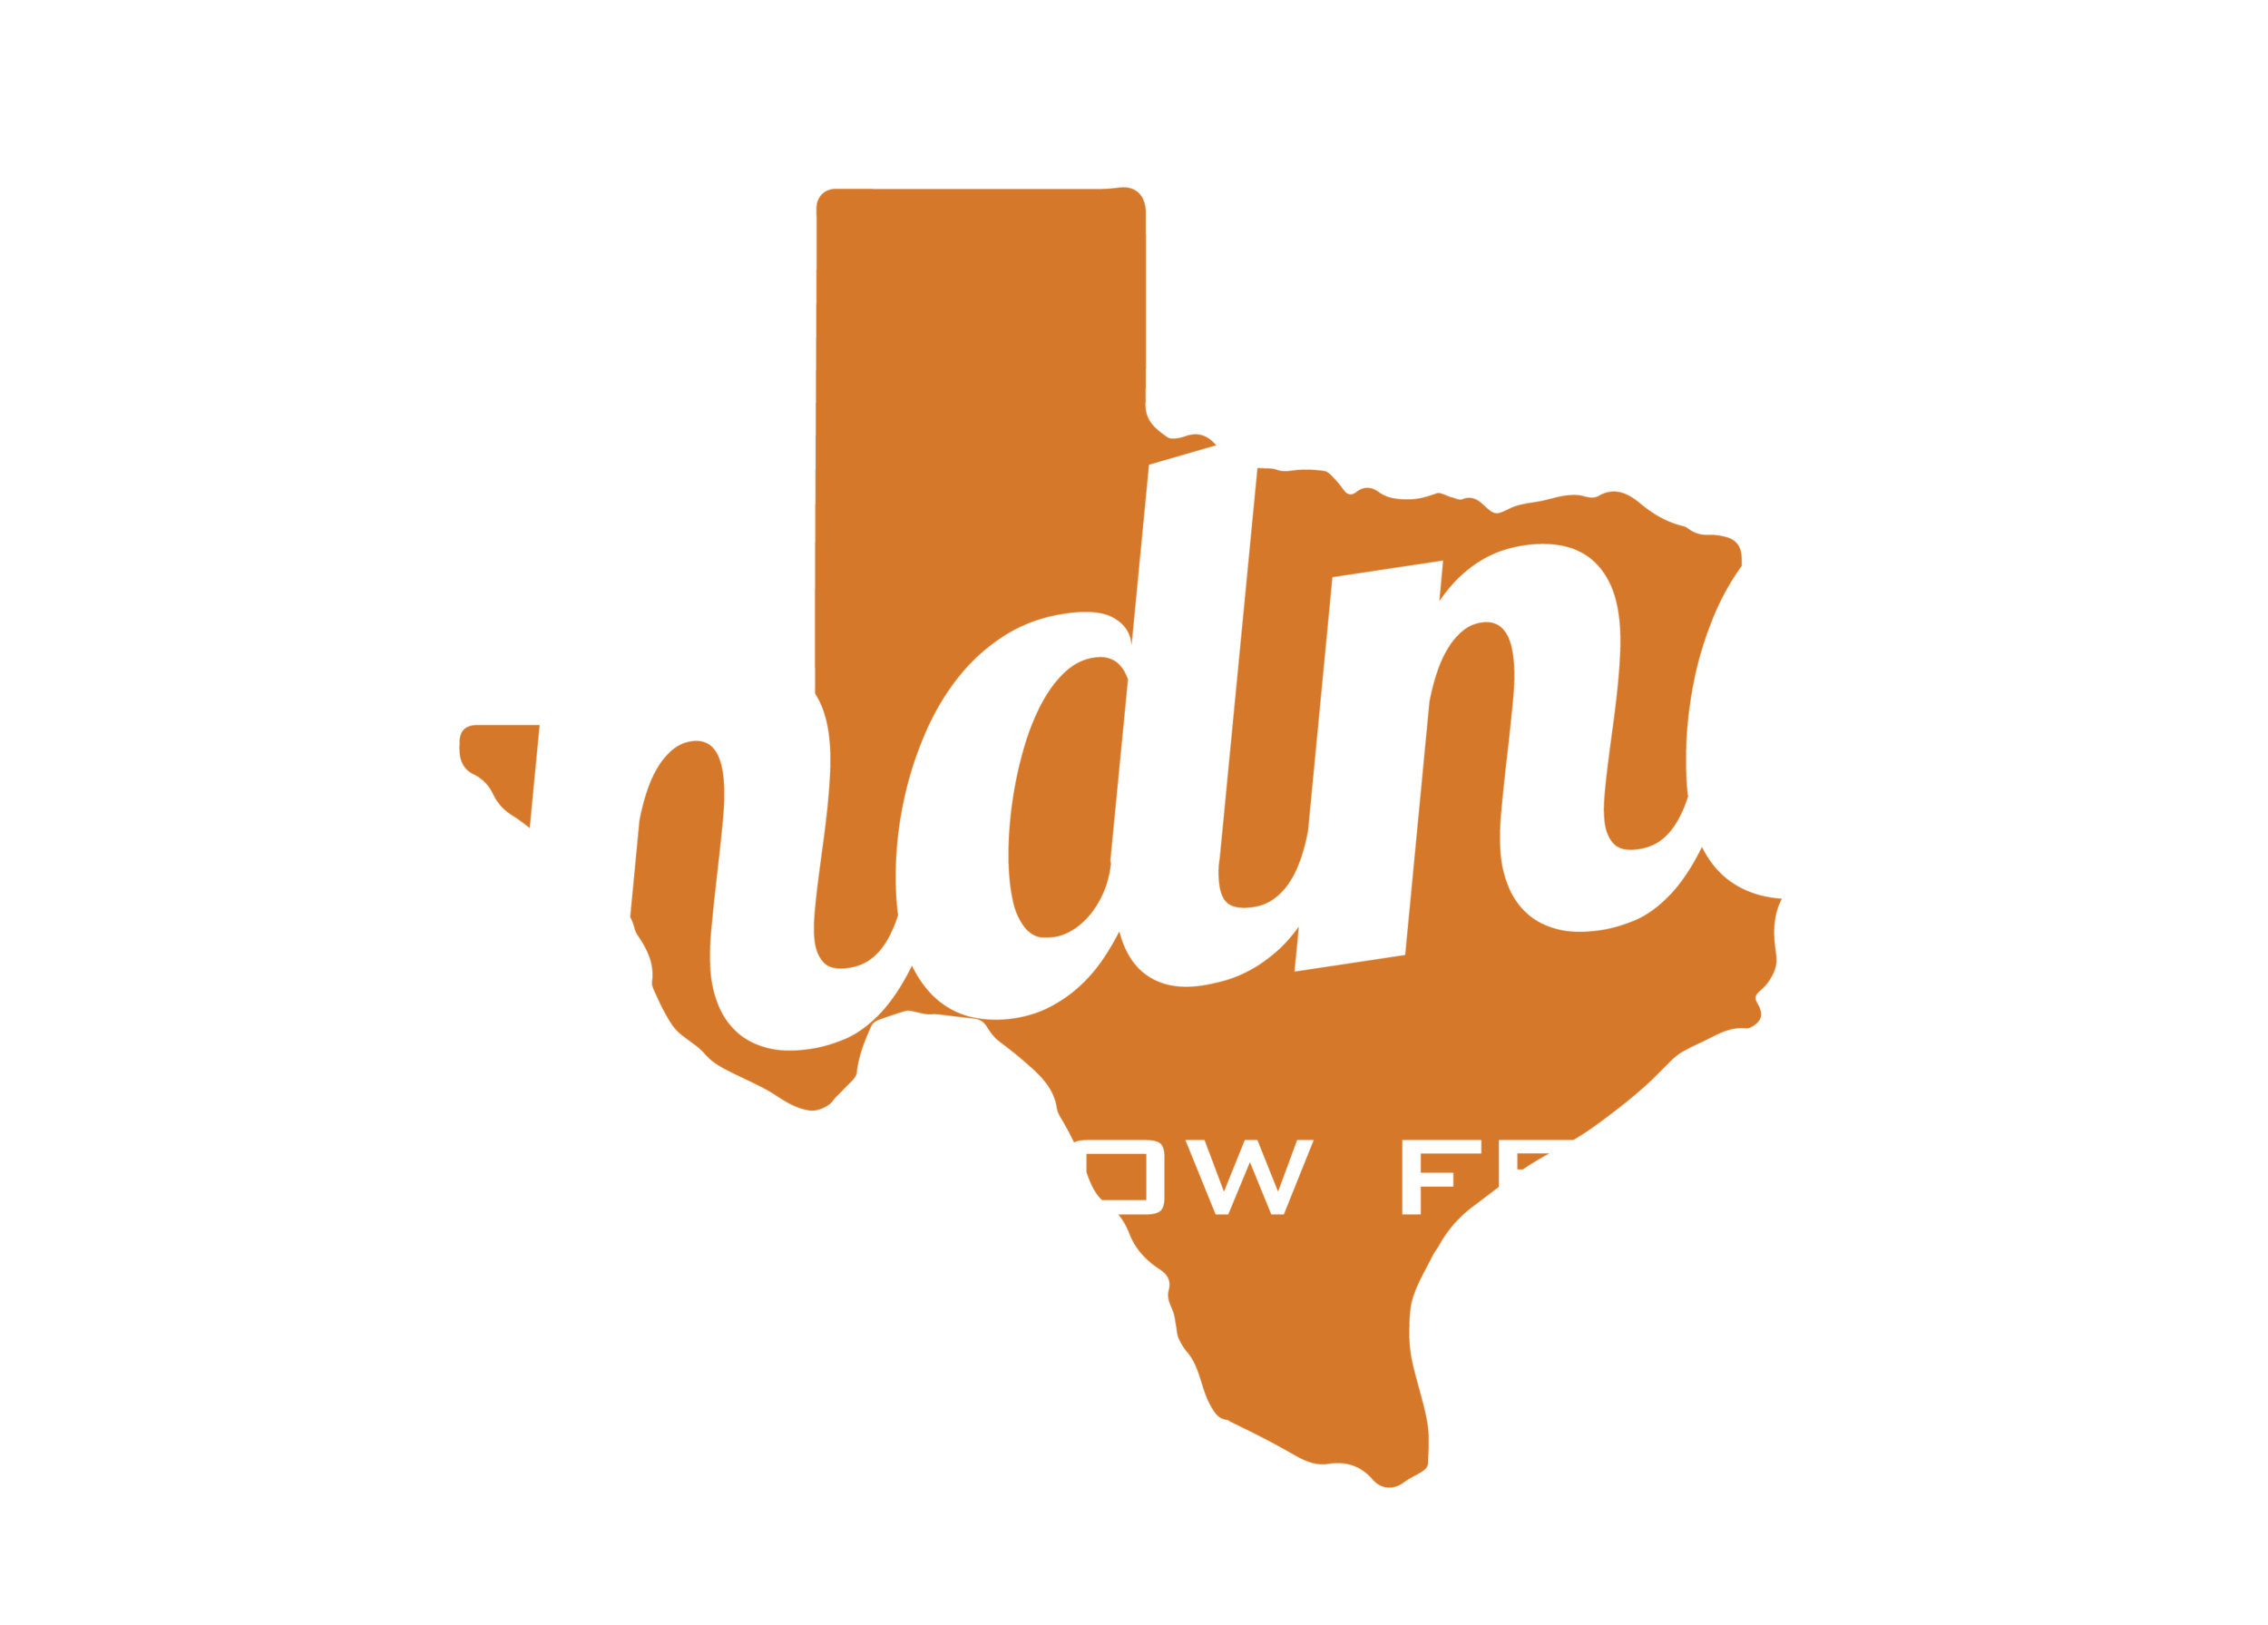 Lindner_ShowFeeds_Logo_White.png